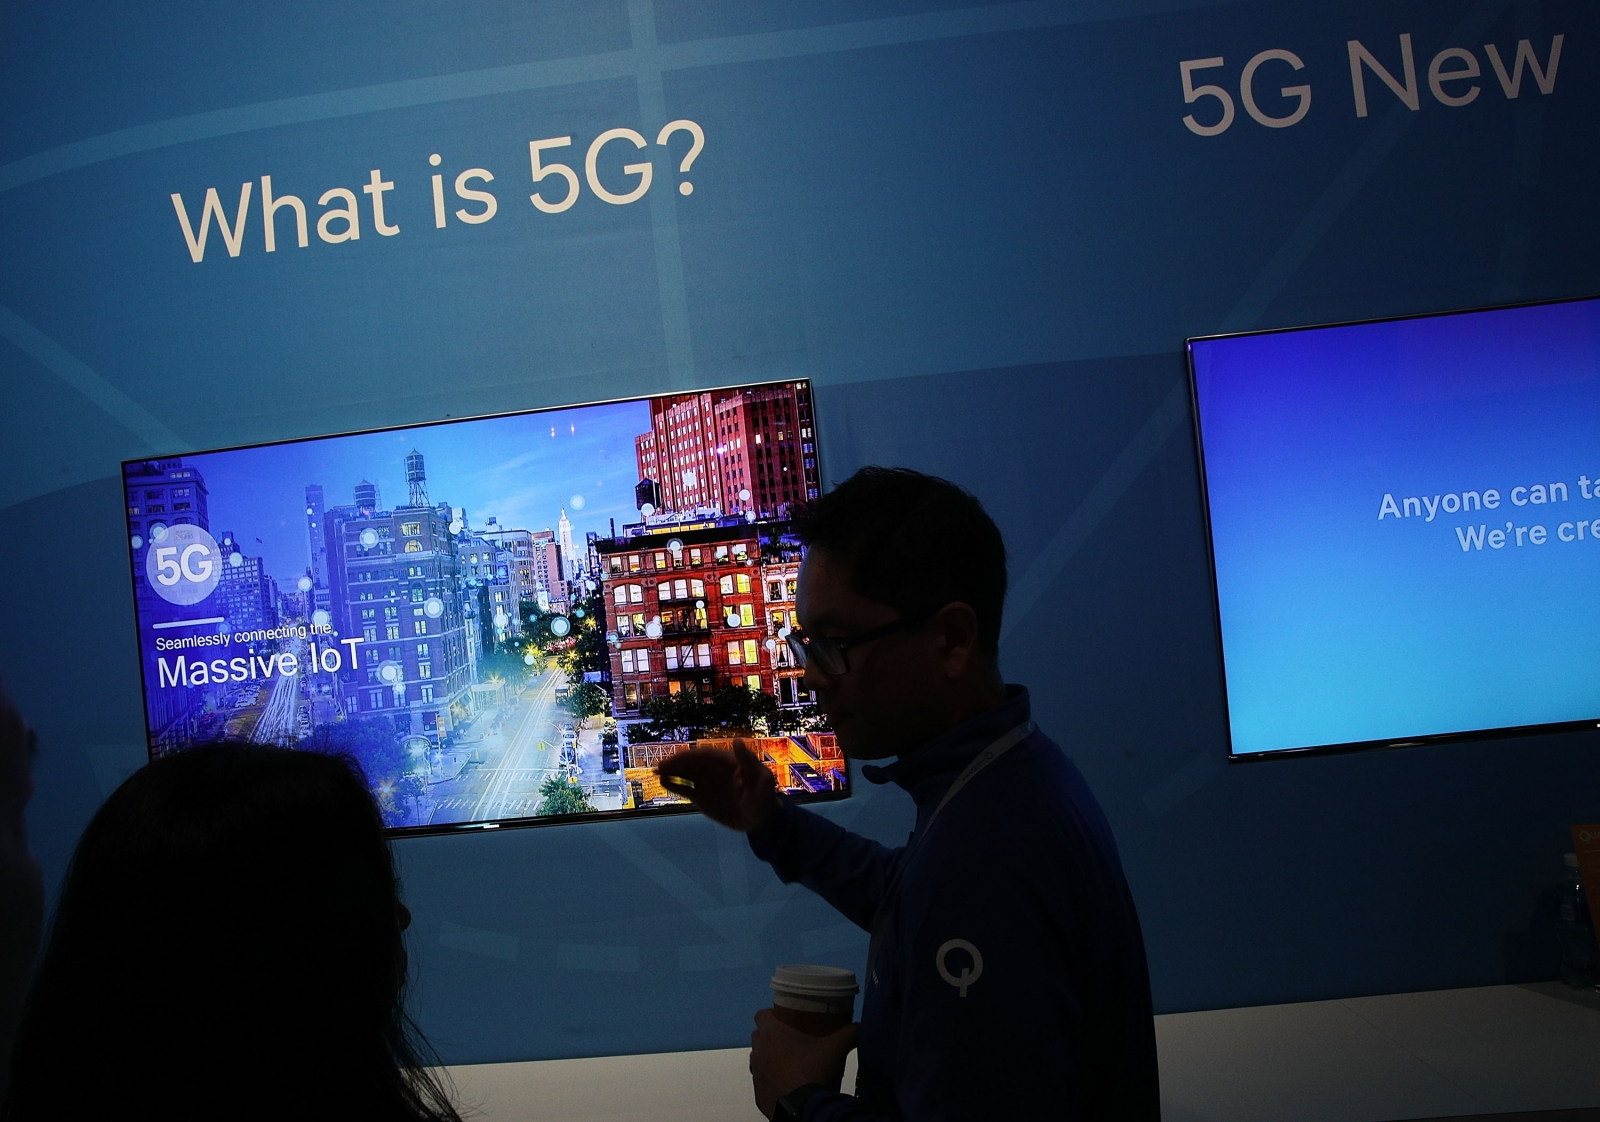 Nokia and Orange collaborates on 5G services